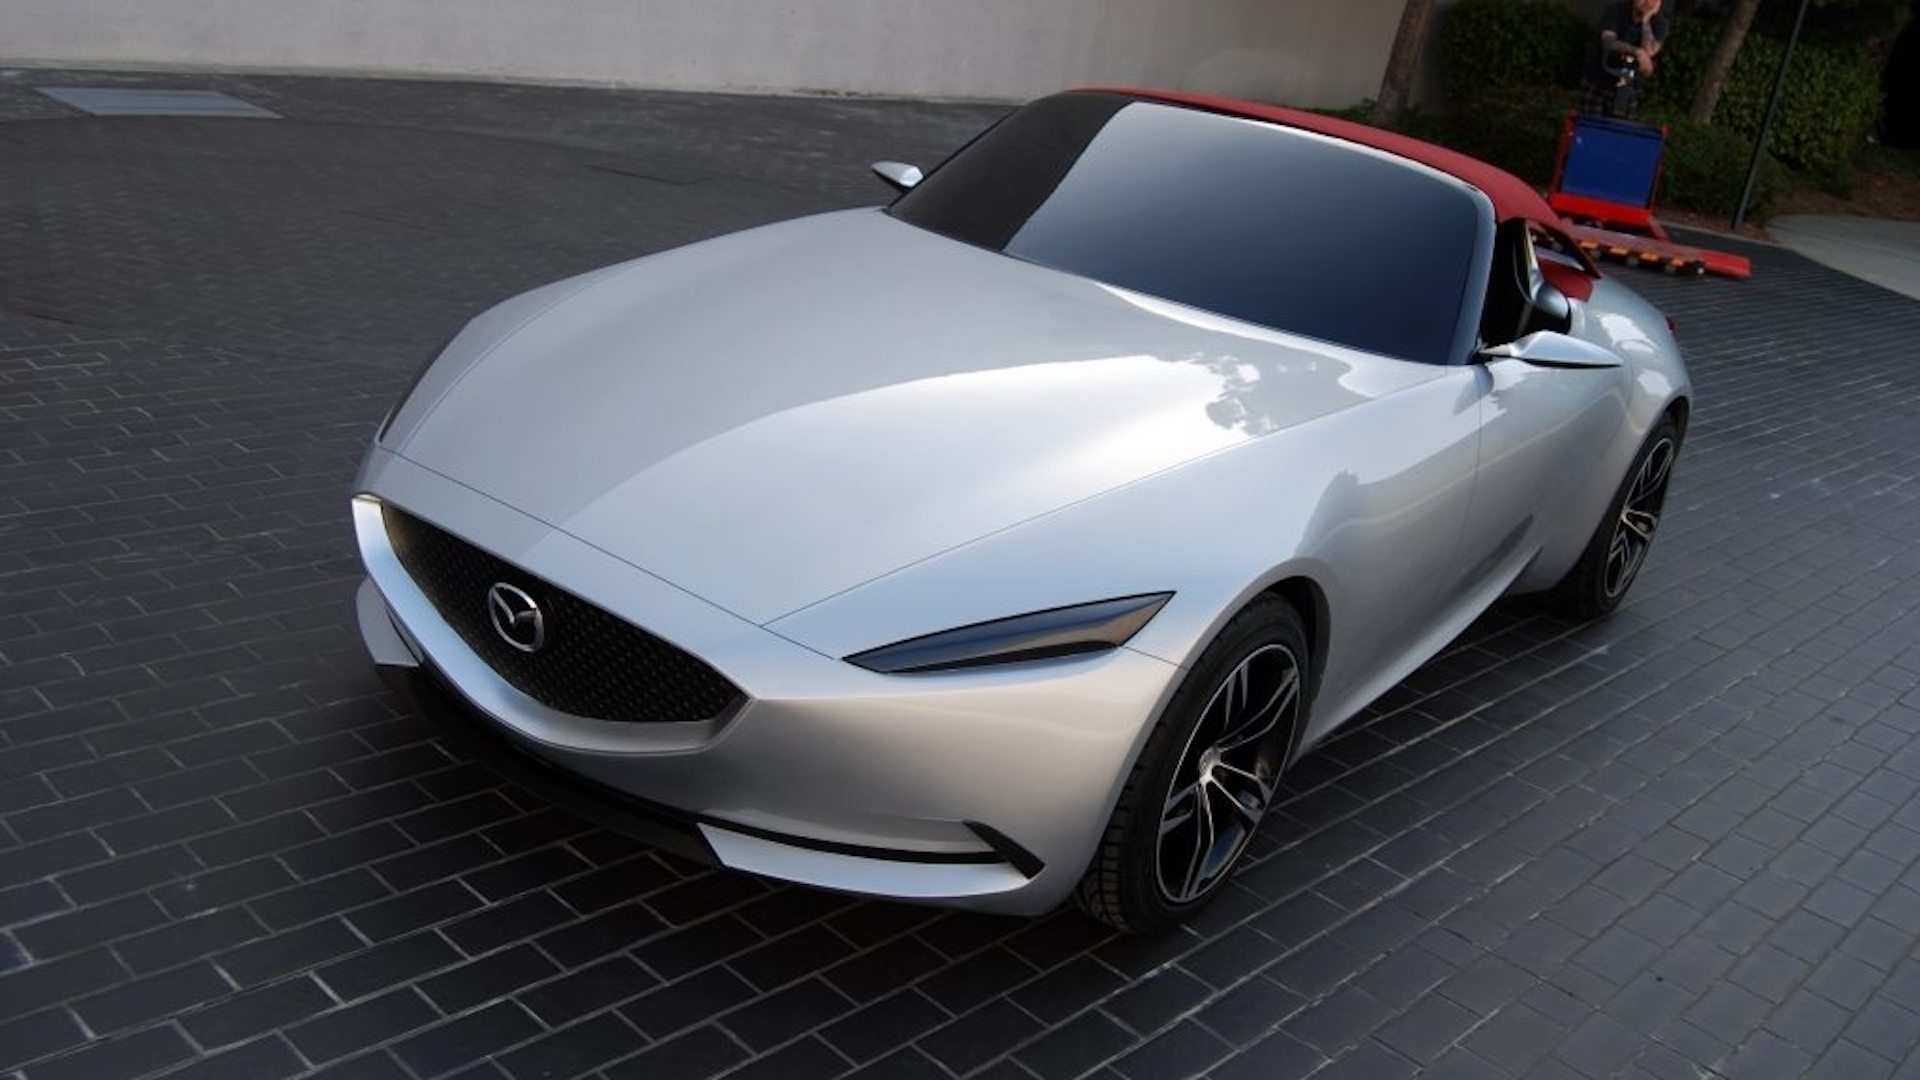 21 Best Review 2020 Mazda MX 5 Miata New Review by 2020 Mazda MX 5 Miata